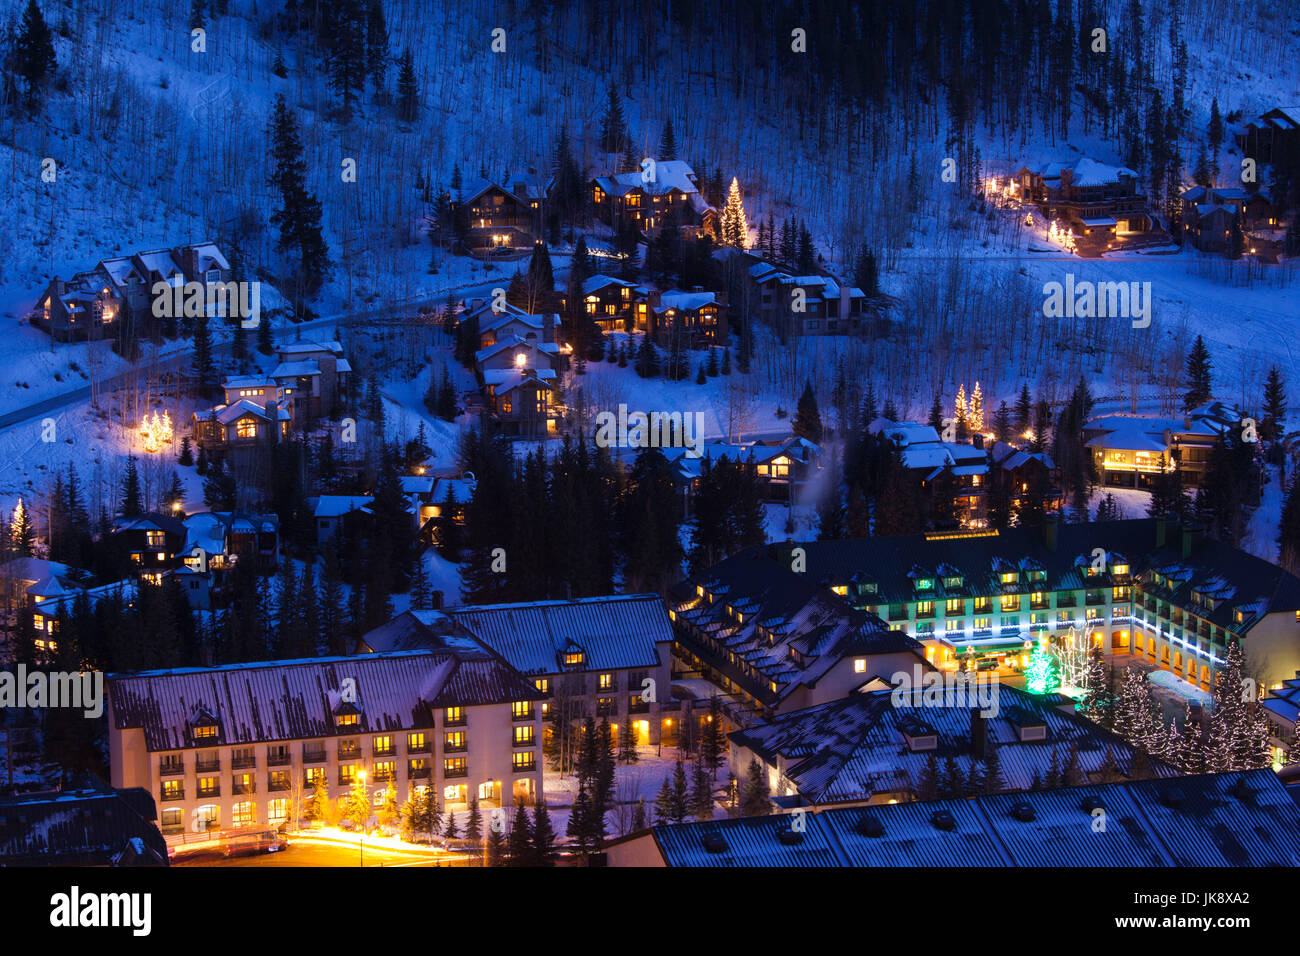 USA, Colorado, Vail, elevated view of Vail Cascade Resort Hotel, dusk, winter - Stock Image